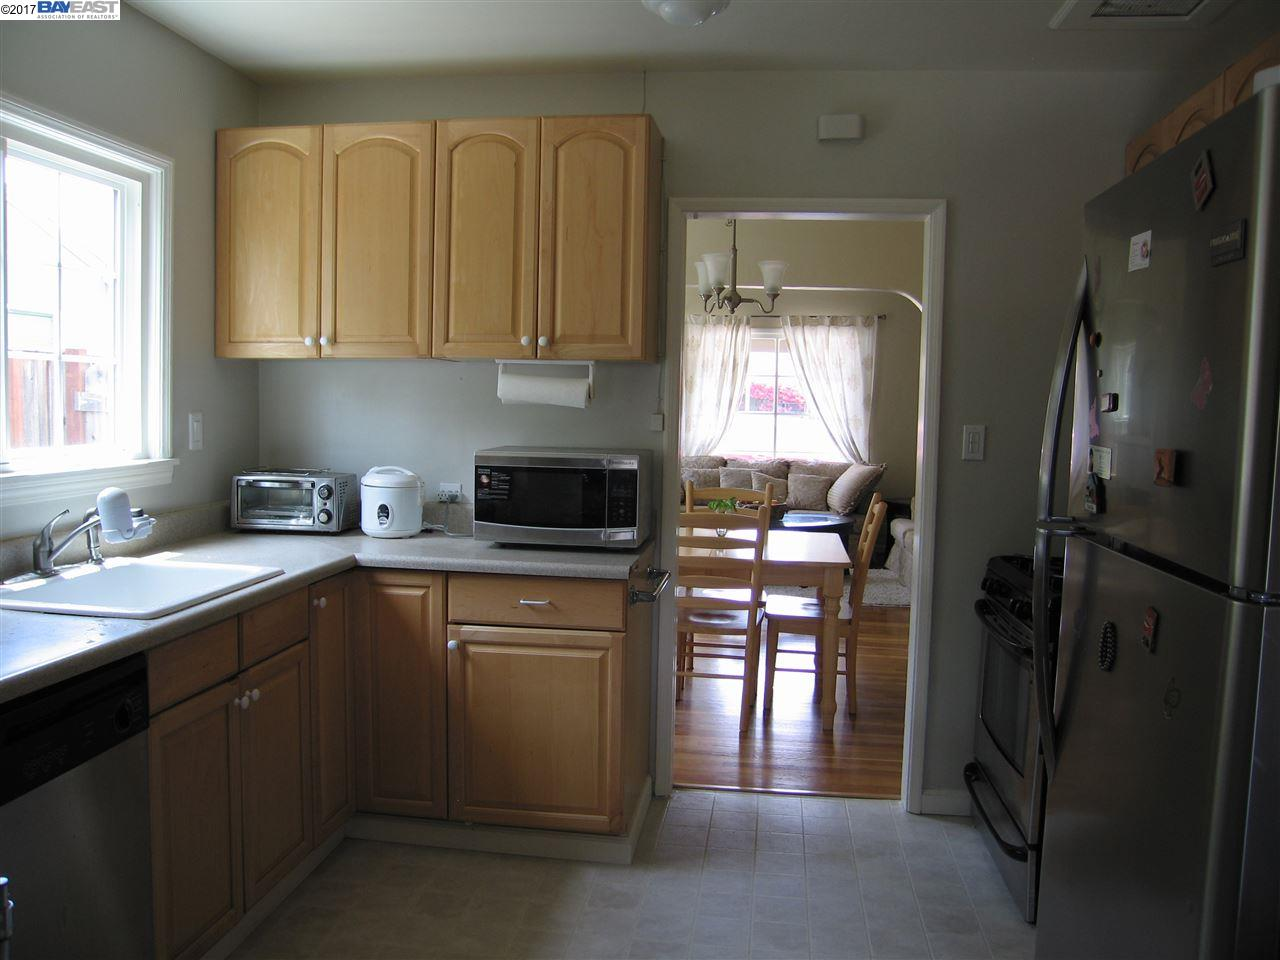 Additional photo for property listing at 536 Laswell Avenue  San Jose, Kalifornien 95128 Vereinigte Staaten